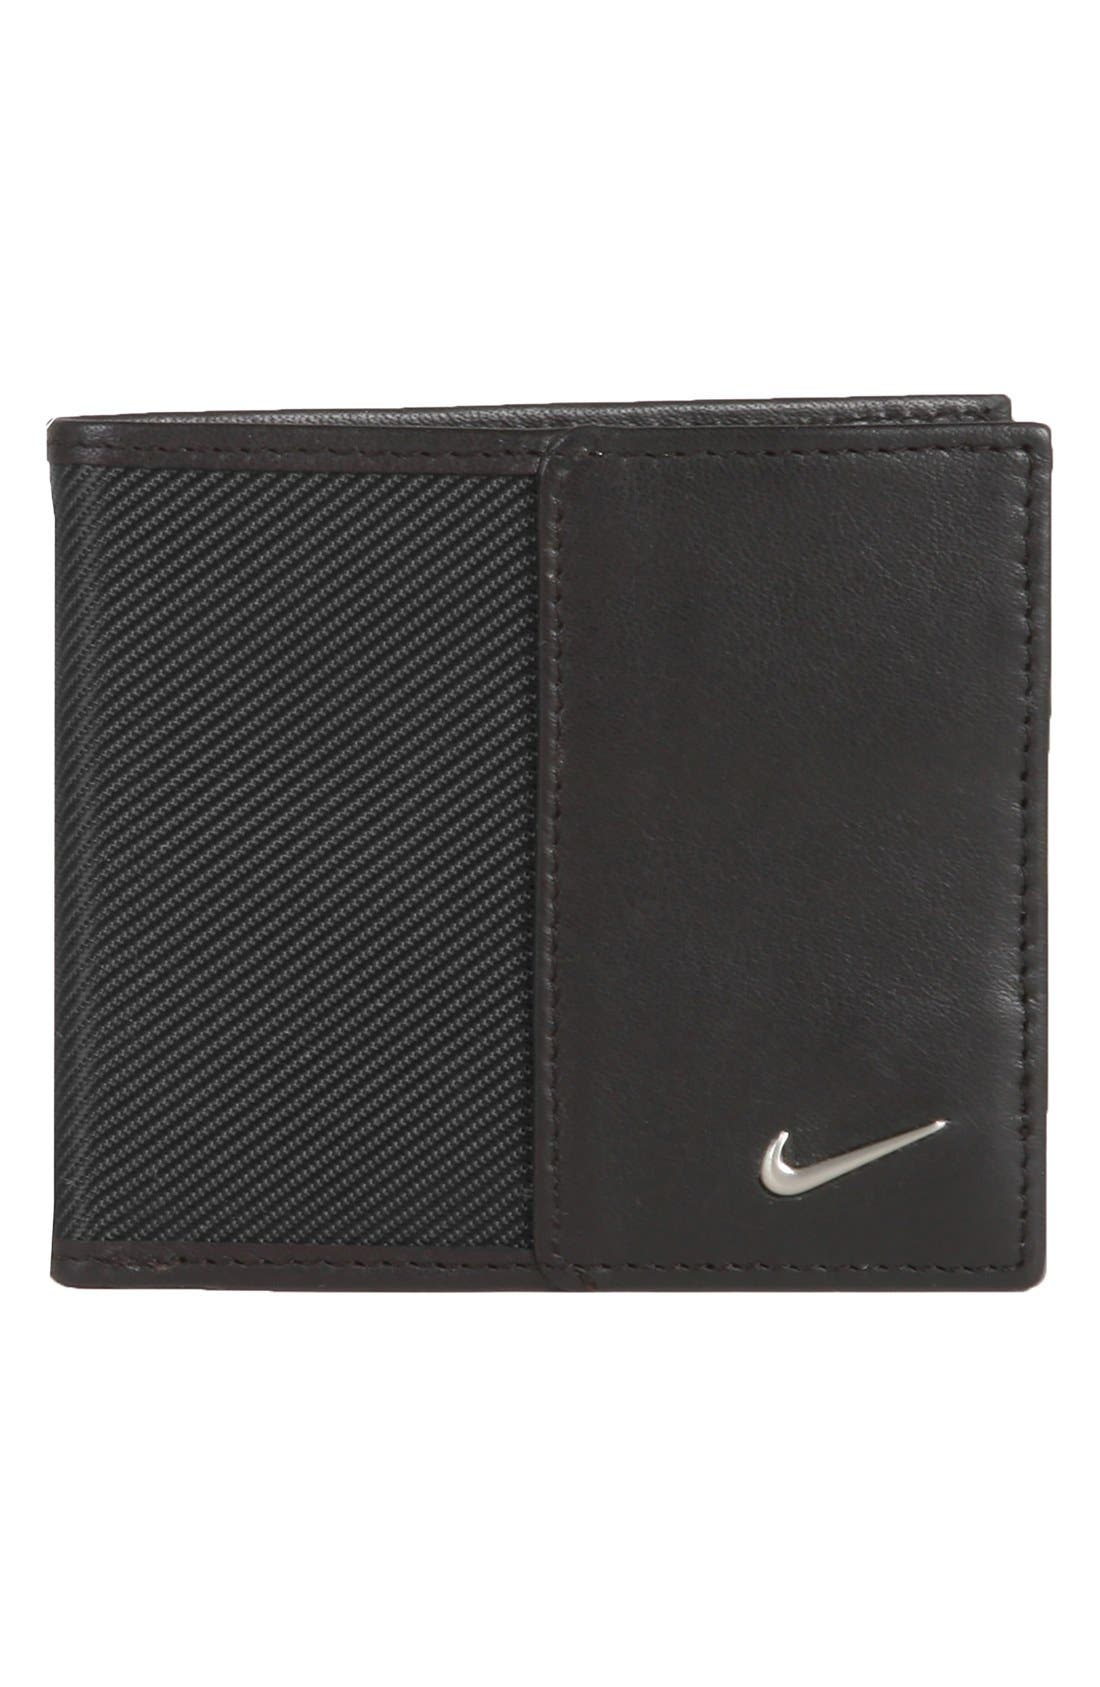 Alternate Image 1 Selected - Nike Leather Wallet